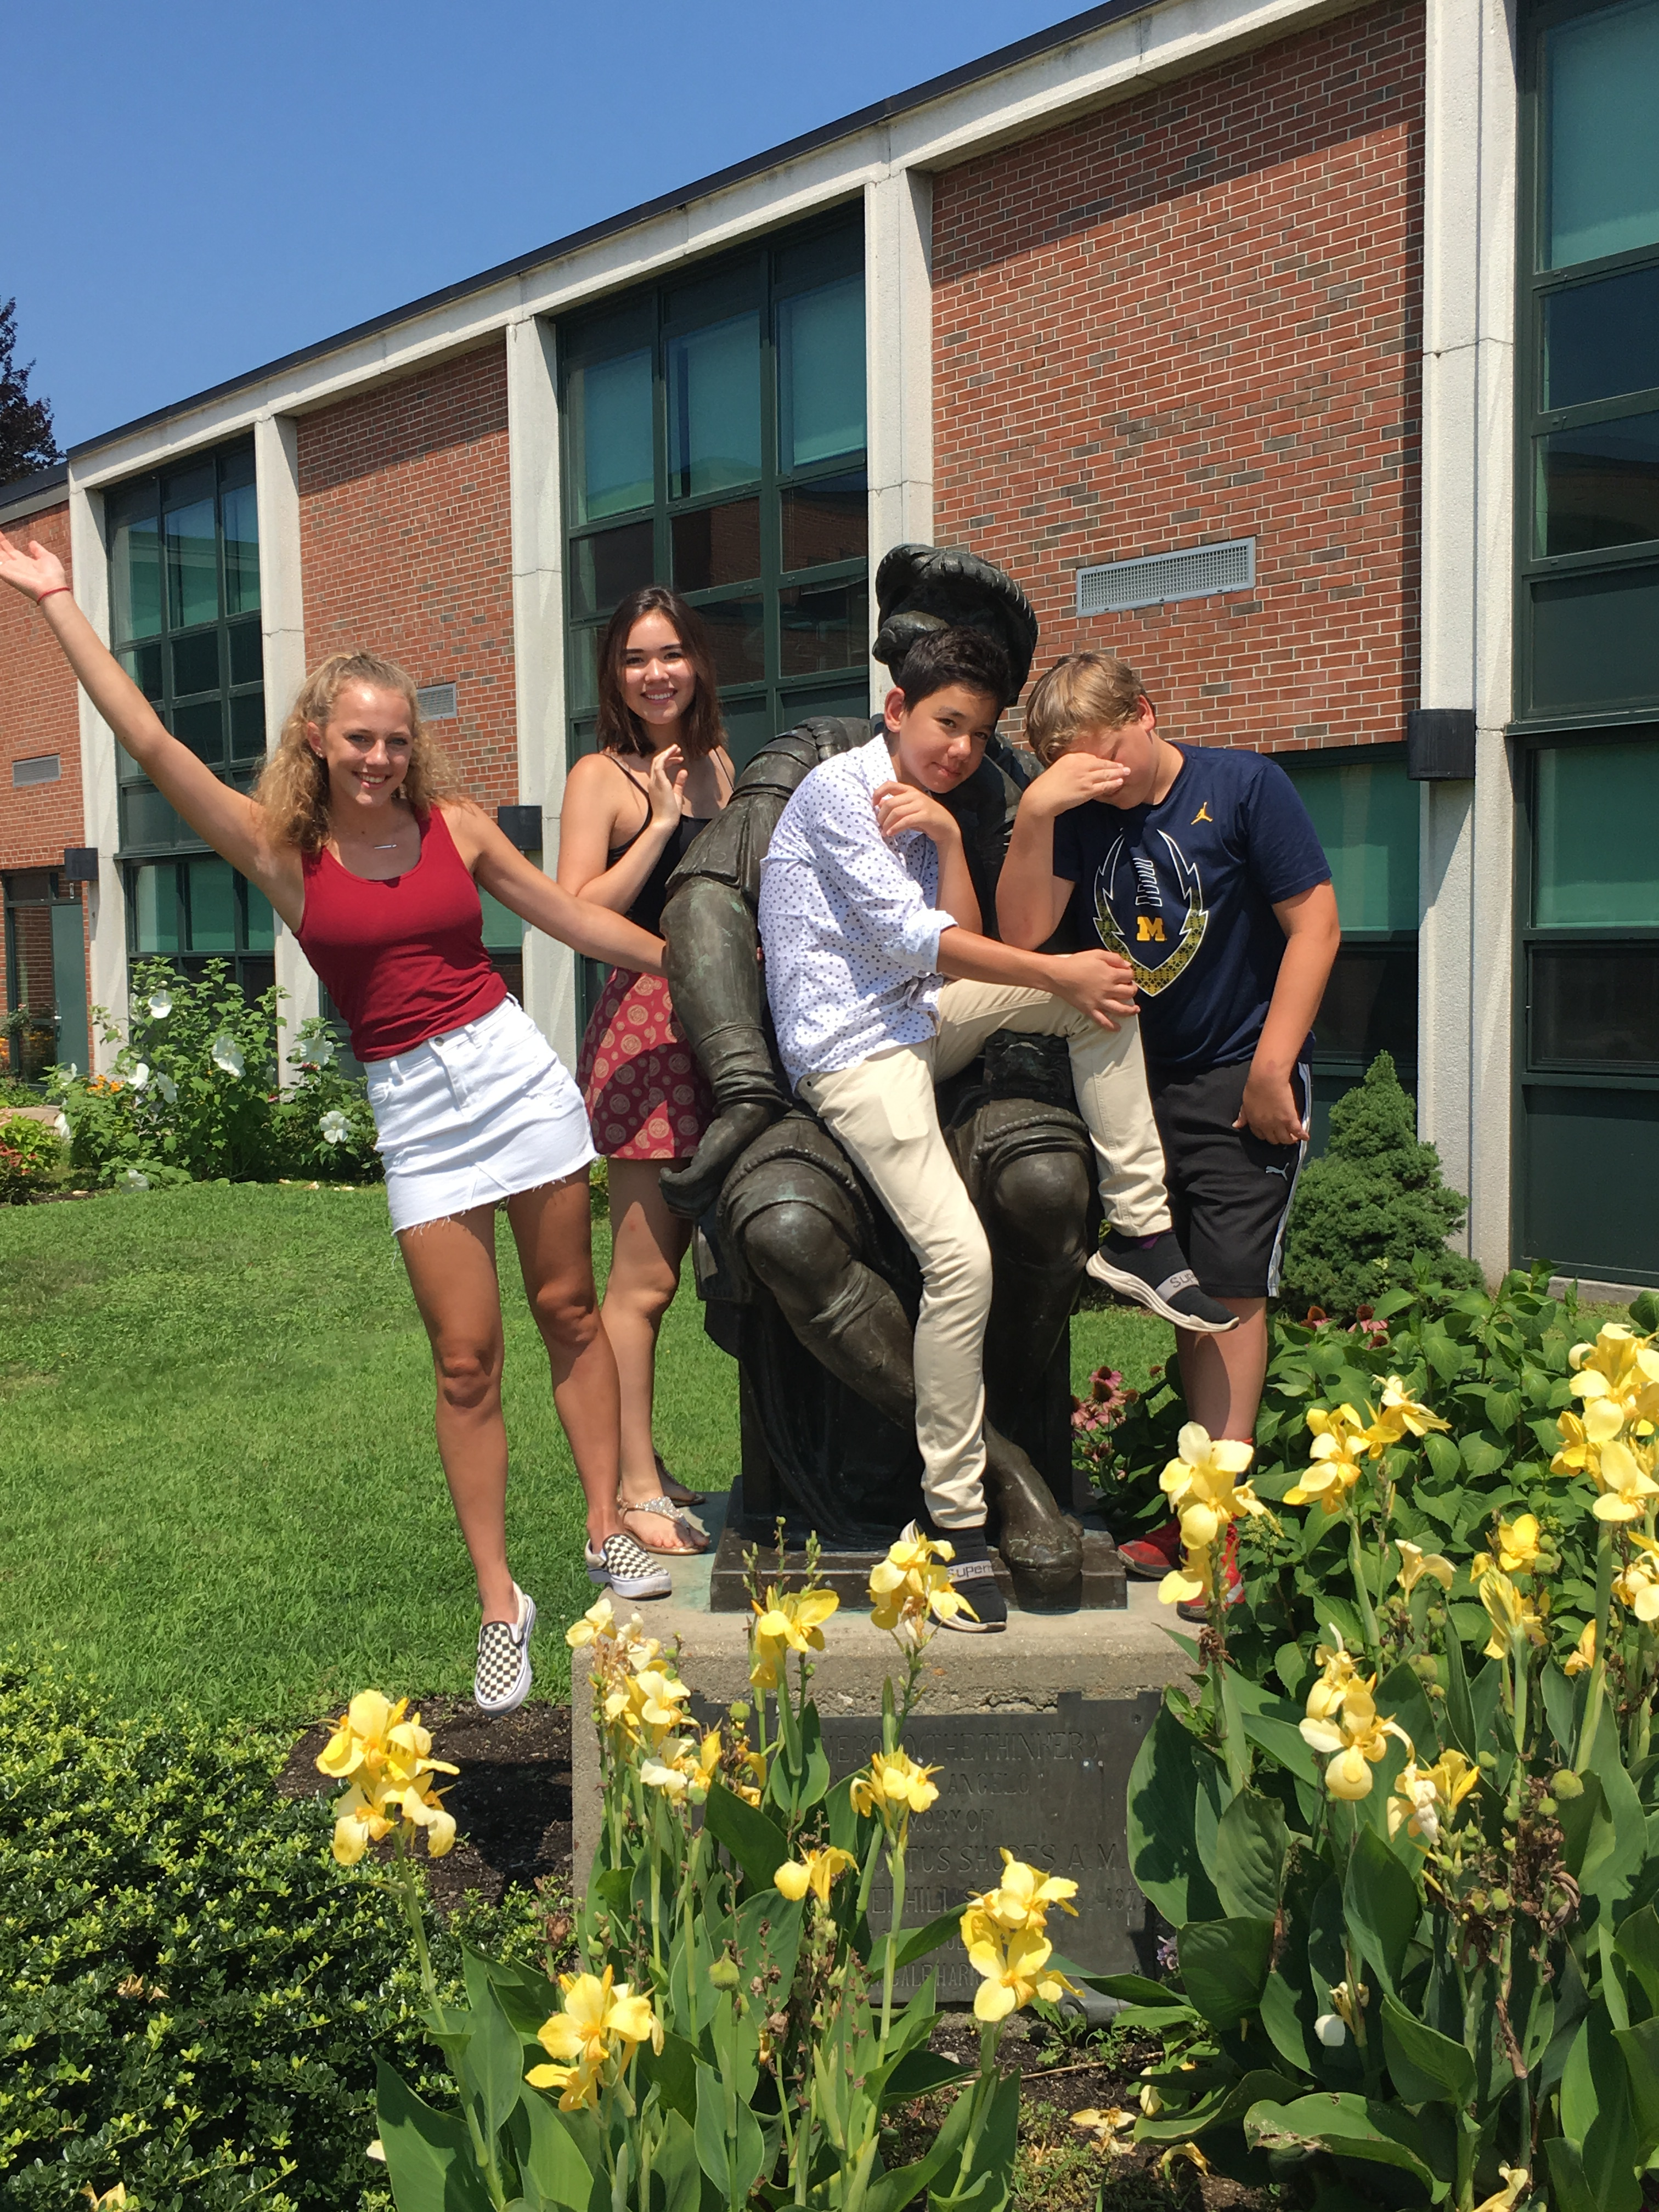 Haverhill High statue with kids.JPG